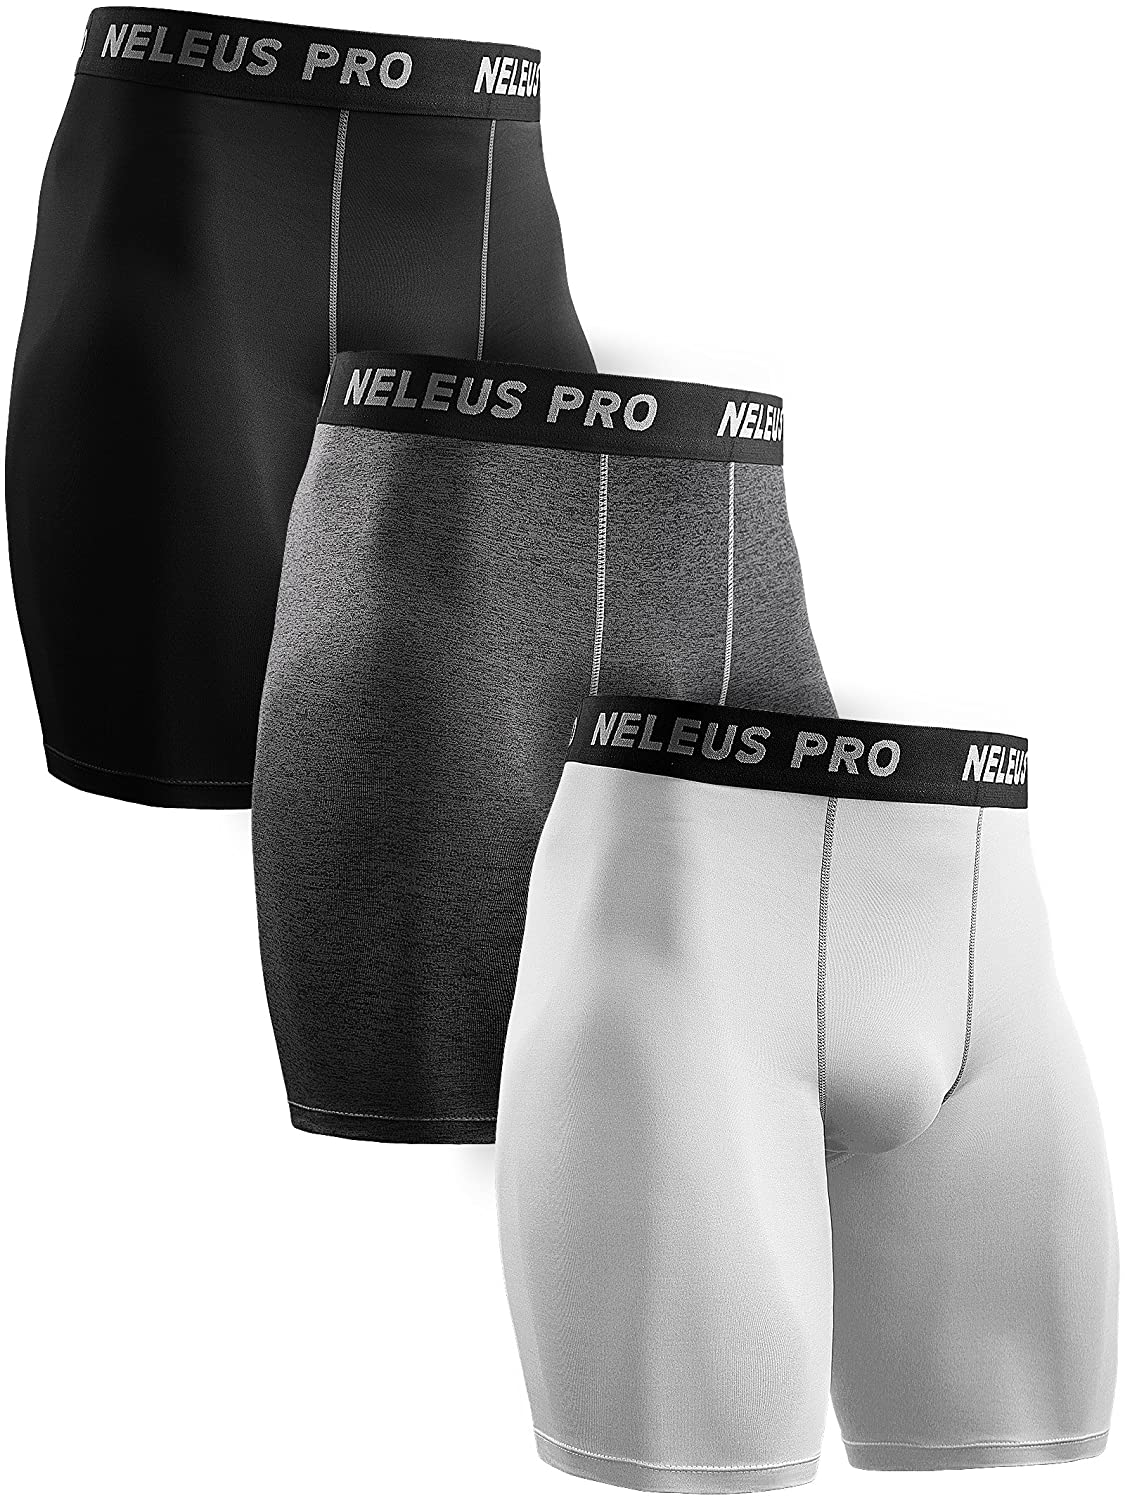 Neleus Men's 3 Pack Performance Compression Shorts,146,Black,Grey,White,X-Large DK0146B+H+W2XL#3